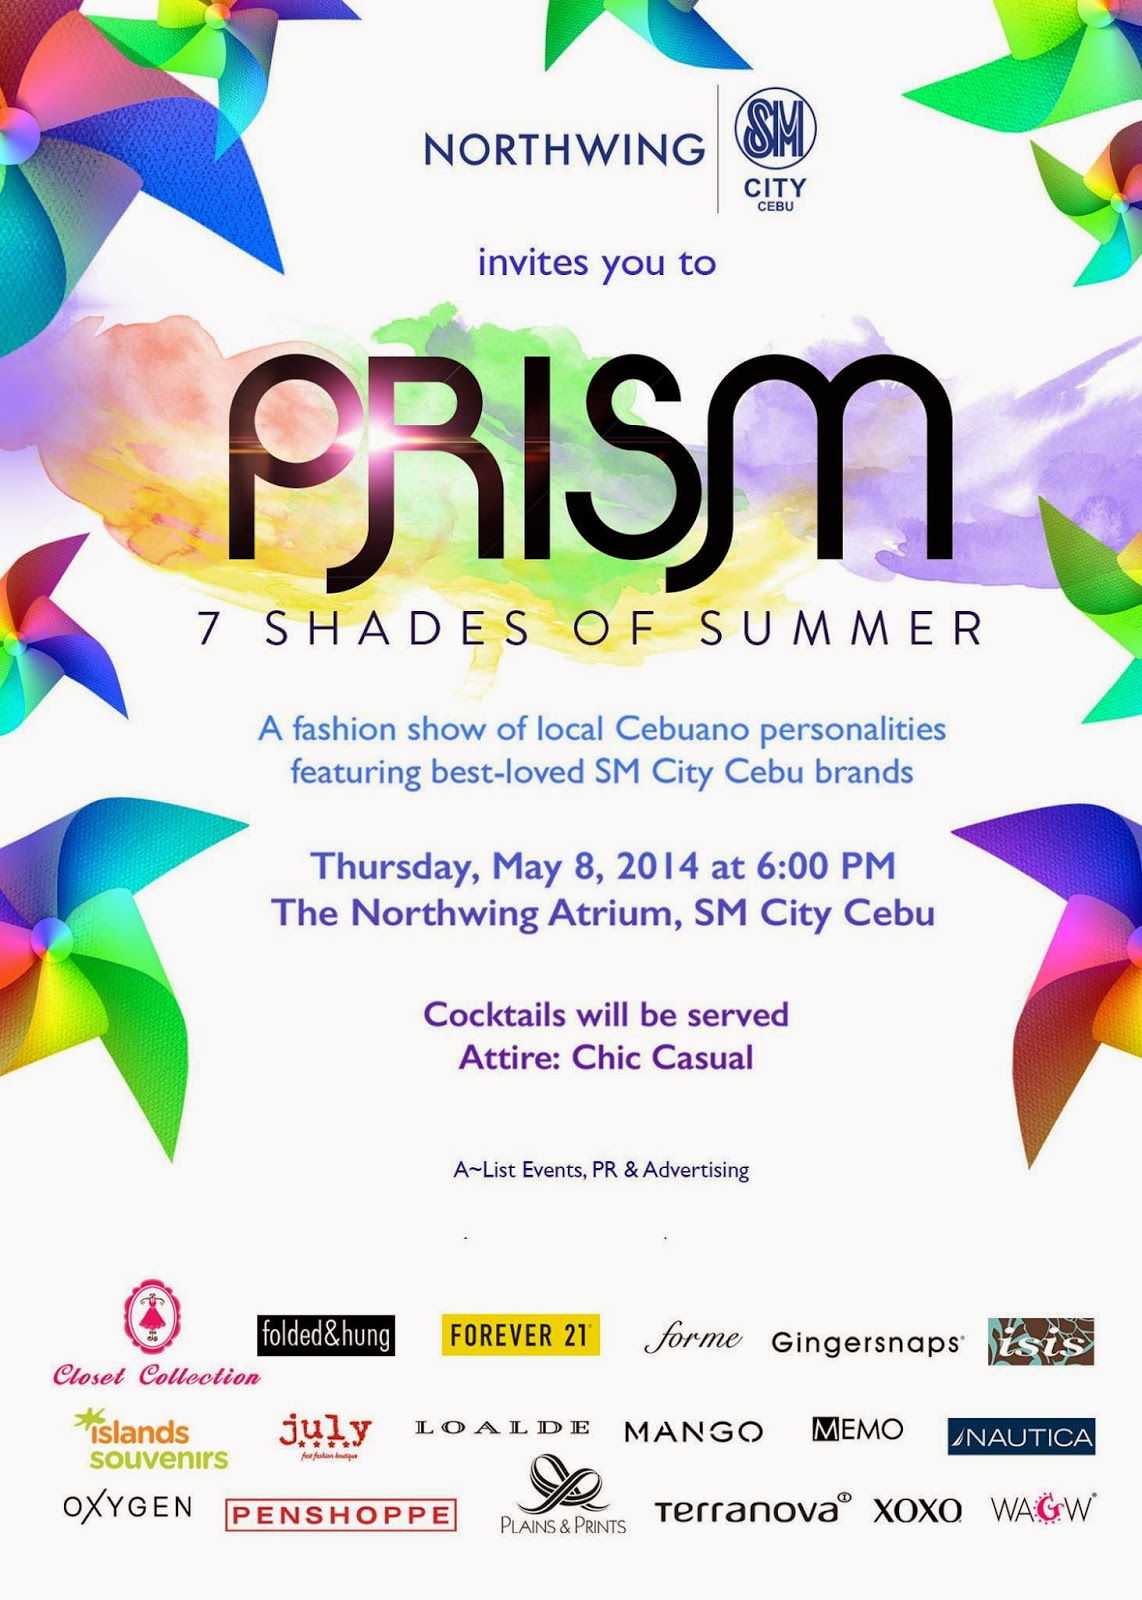 PRISM-7-Shade-of-Summer-SM-City-Cebu